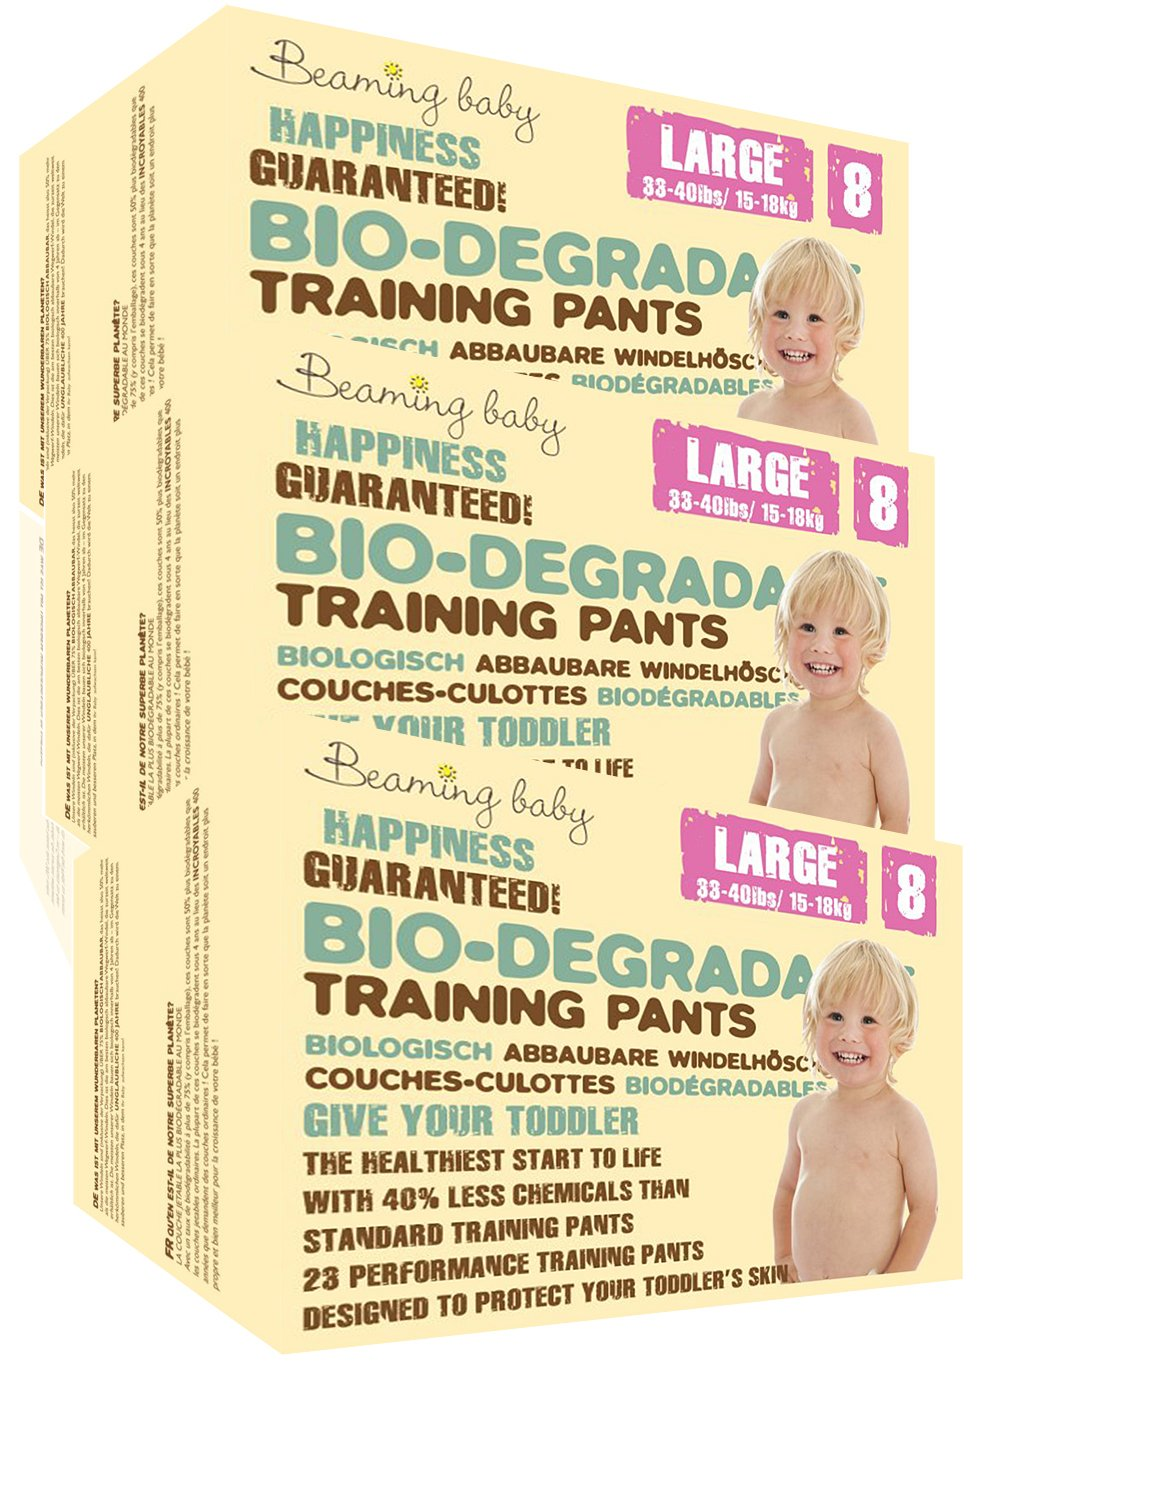 Pack Of 3 Beaming Baby Biodegradable Large Training Pants (Size 8) 69 Nappies